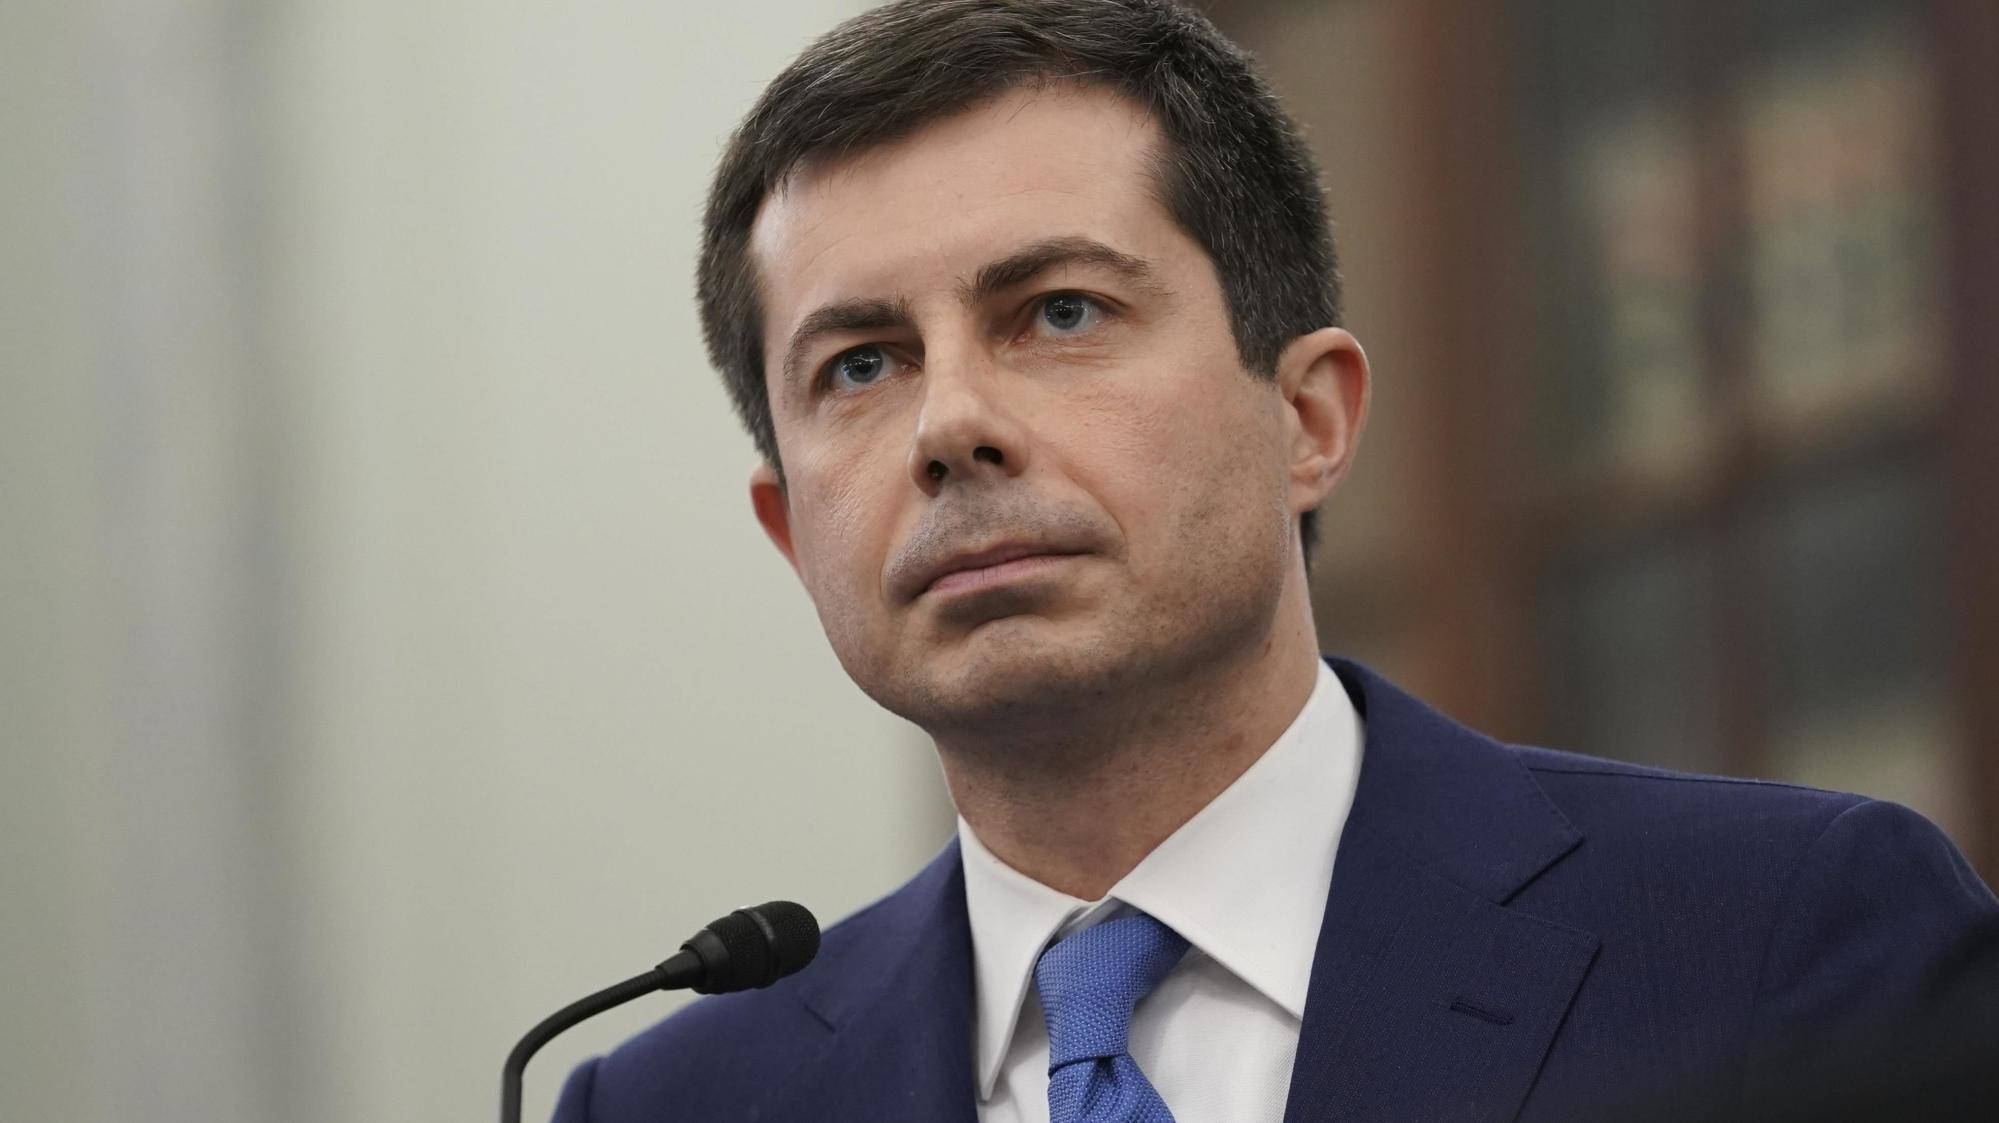 money.yahoo.com: Pete Buttigieg confirmed as Transportation secretary